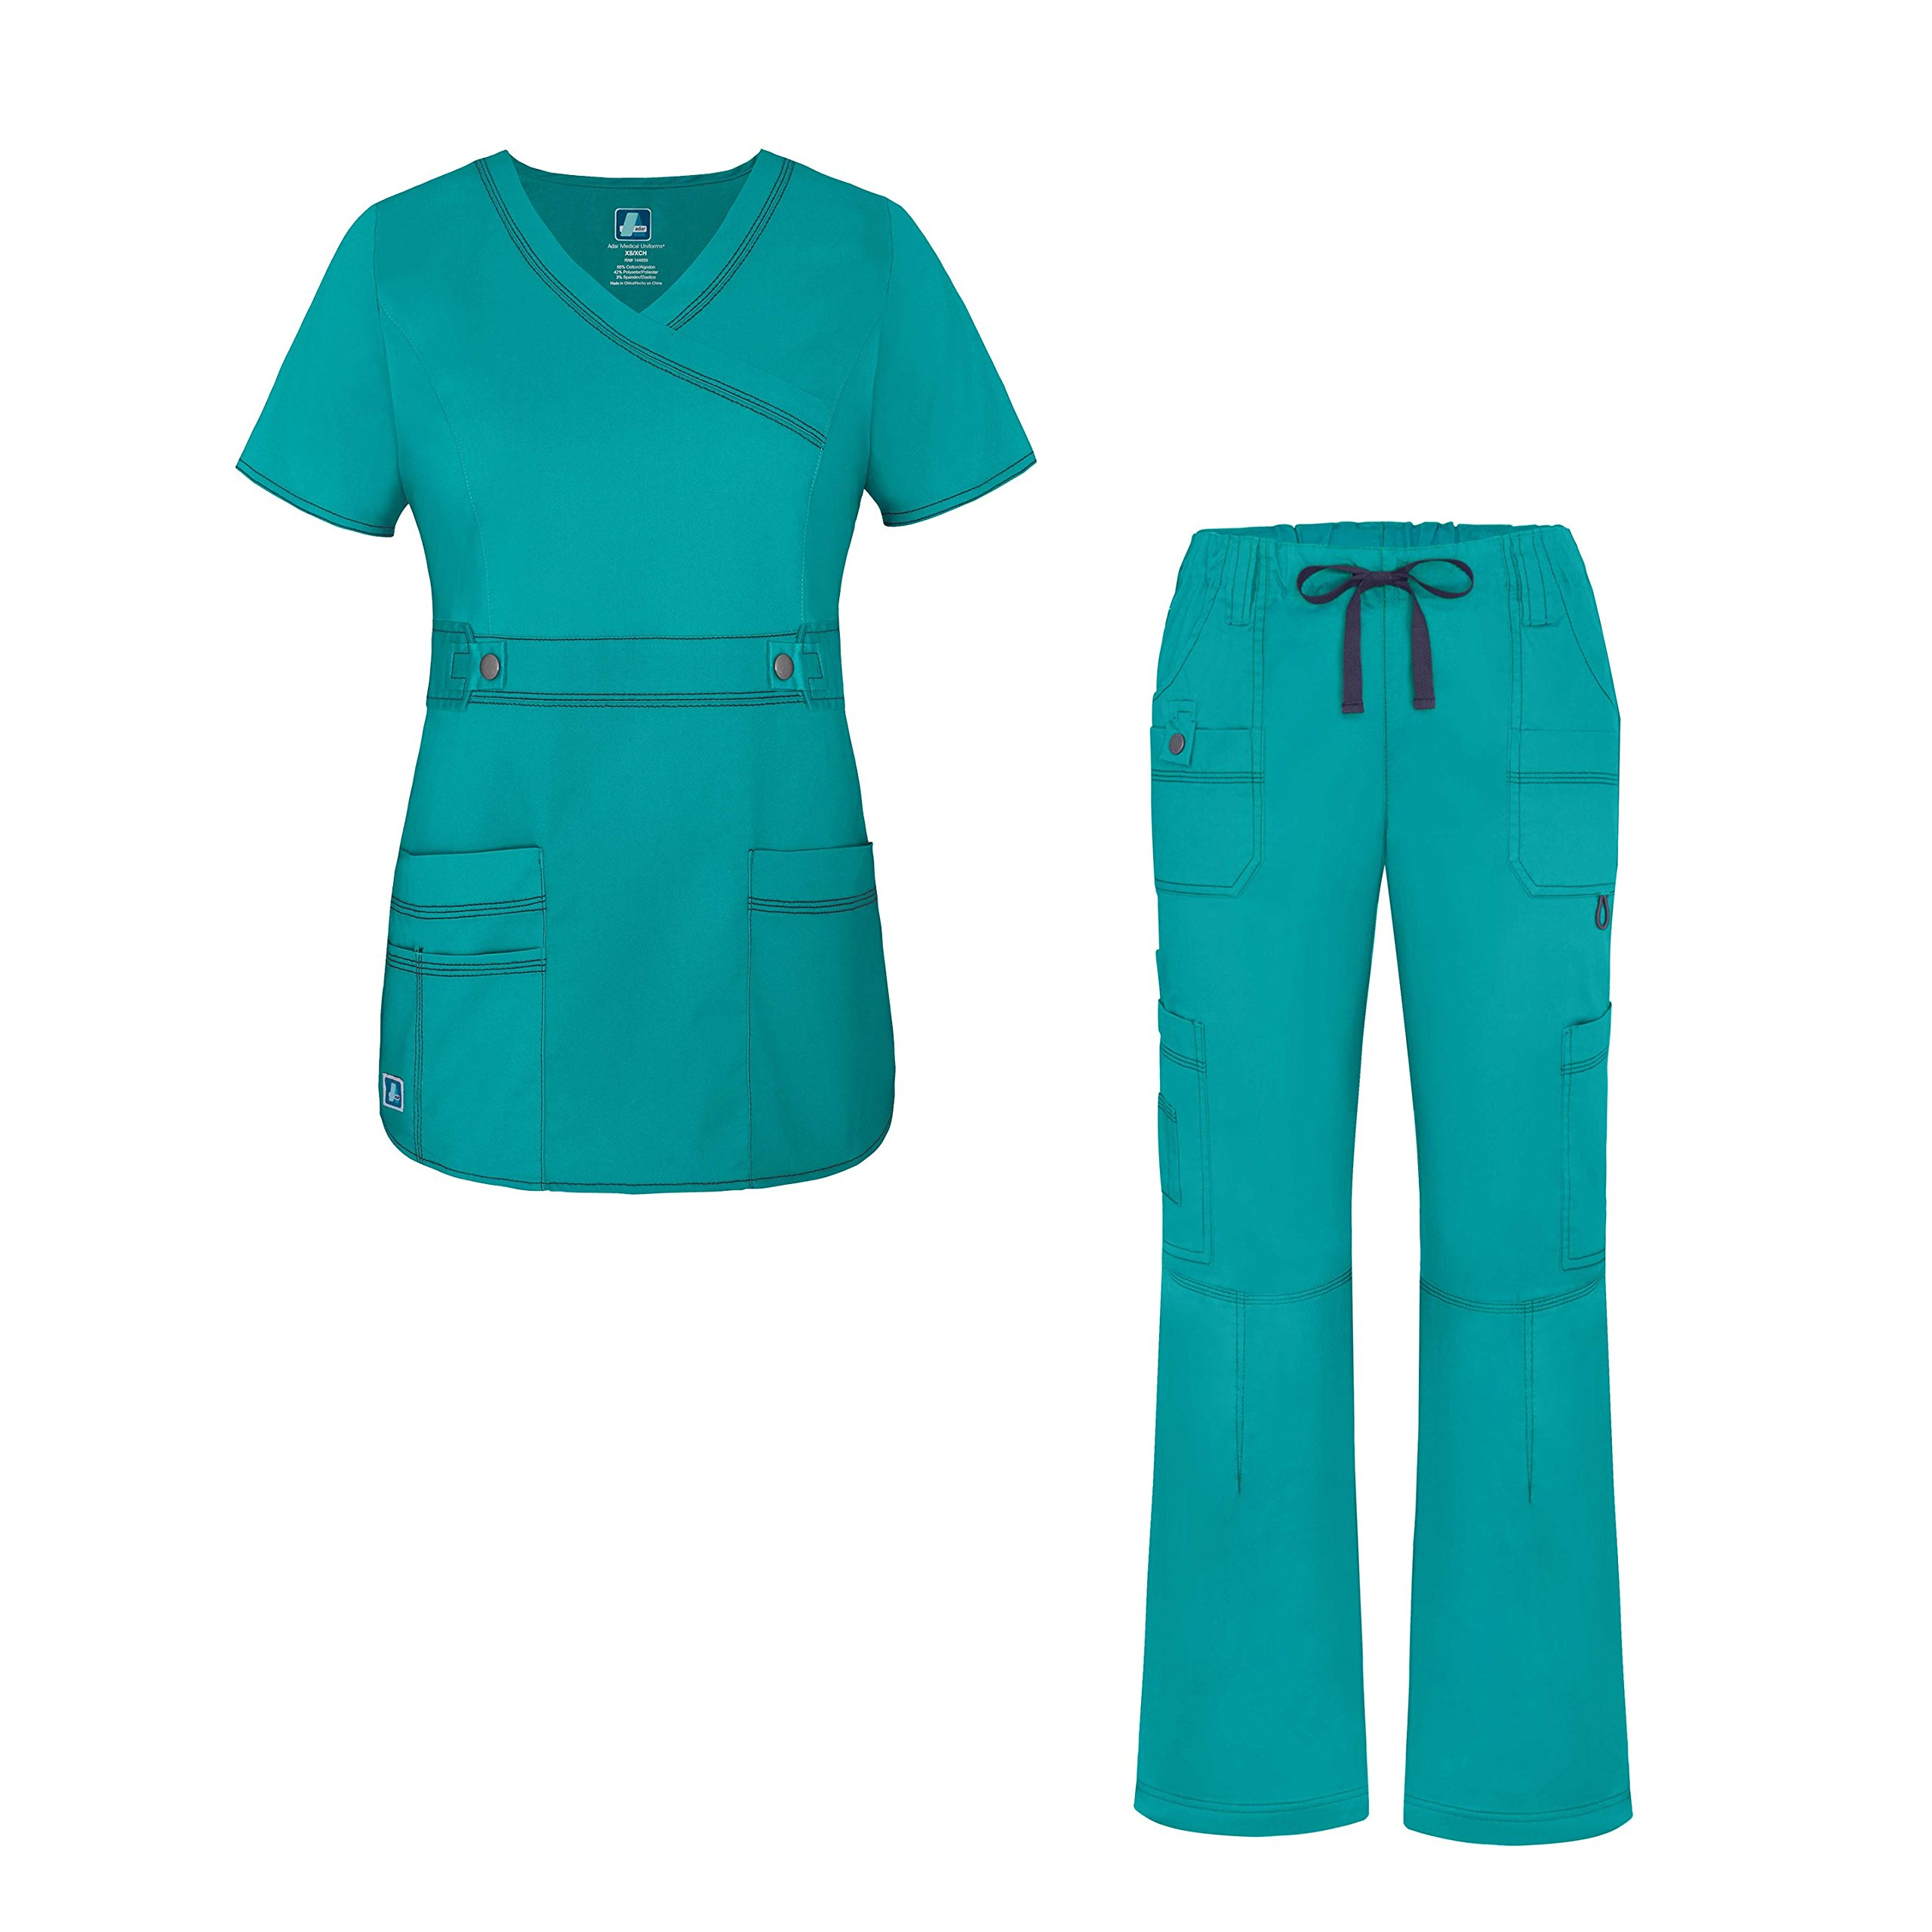 Adar Pop-Stretch Junior Fit Women's Scrub Set - Crossover Top and Multi Pocket Pants - 3500 - Teal Green - S